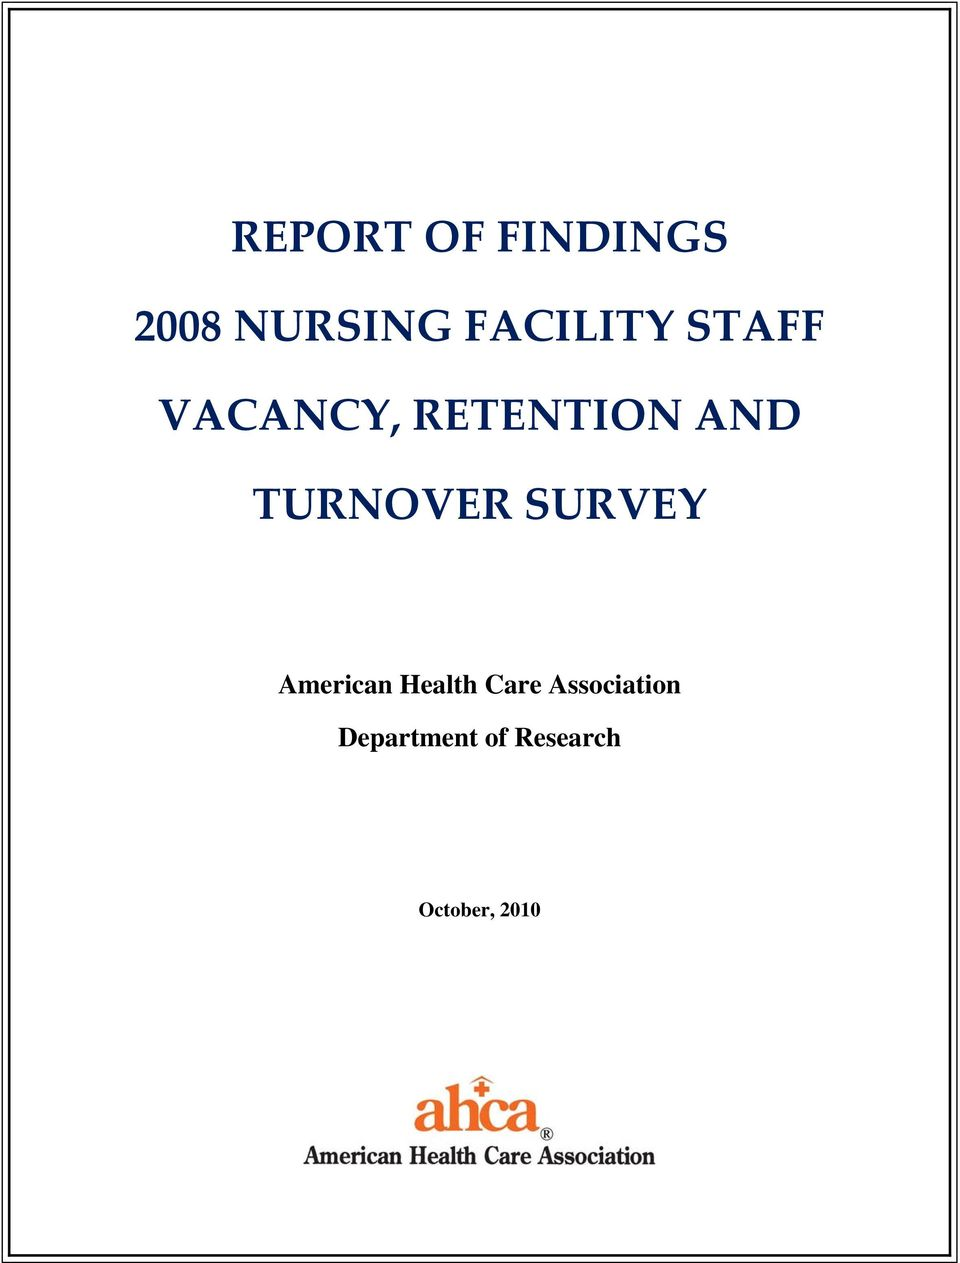 TURNOVER SURVEY American Health Care